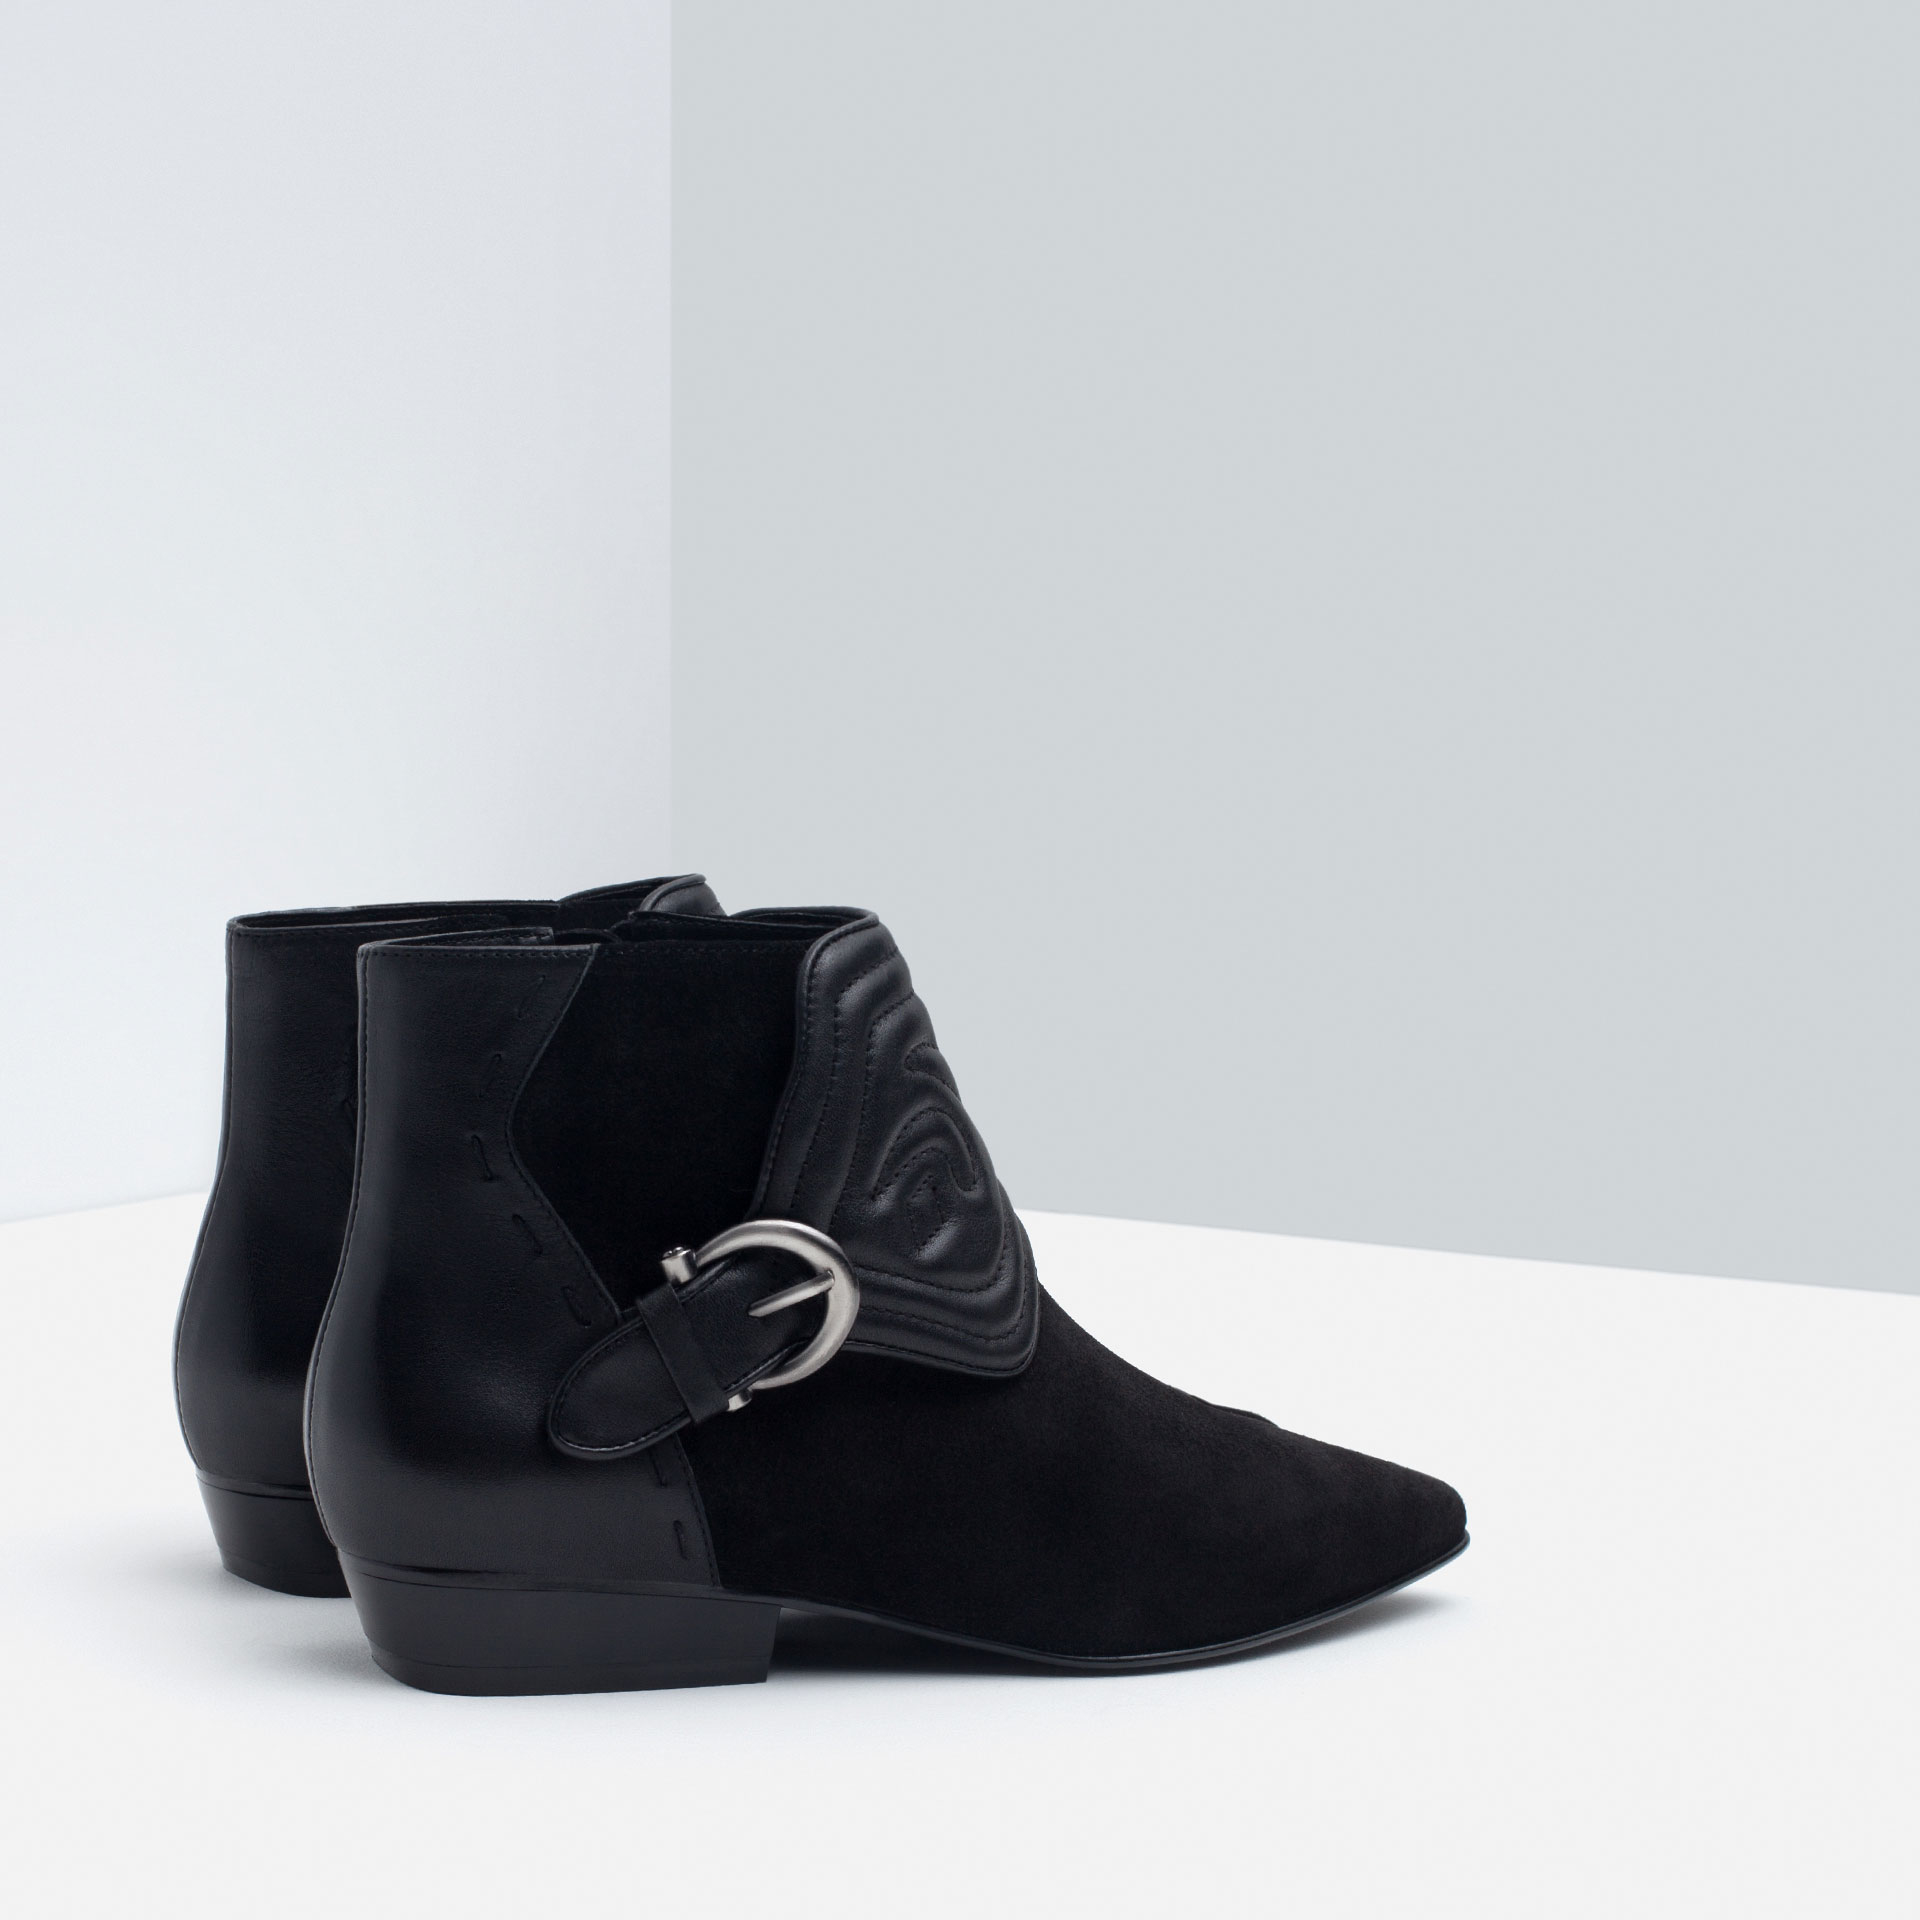 Zara Embossed Leather Flat Ankle Boots in Black | Lyst